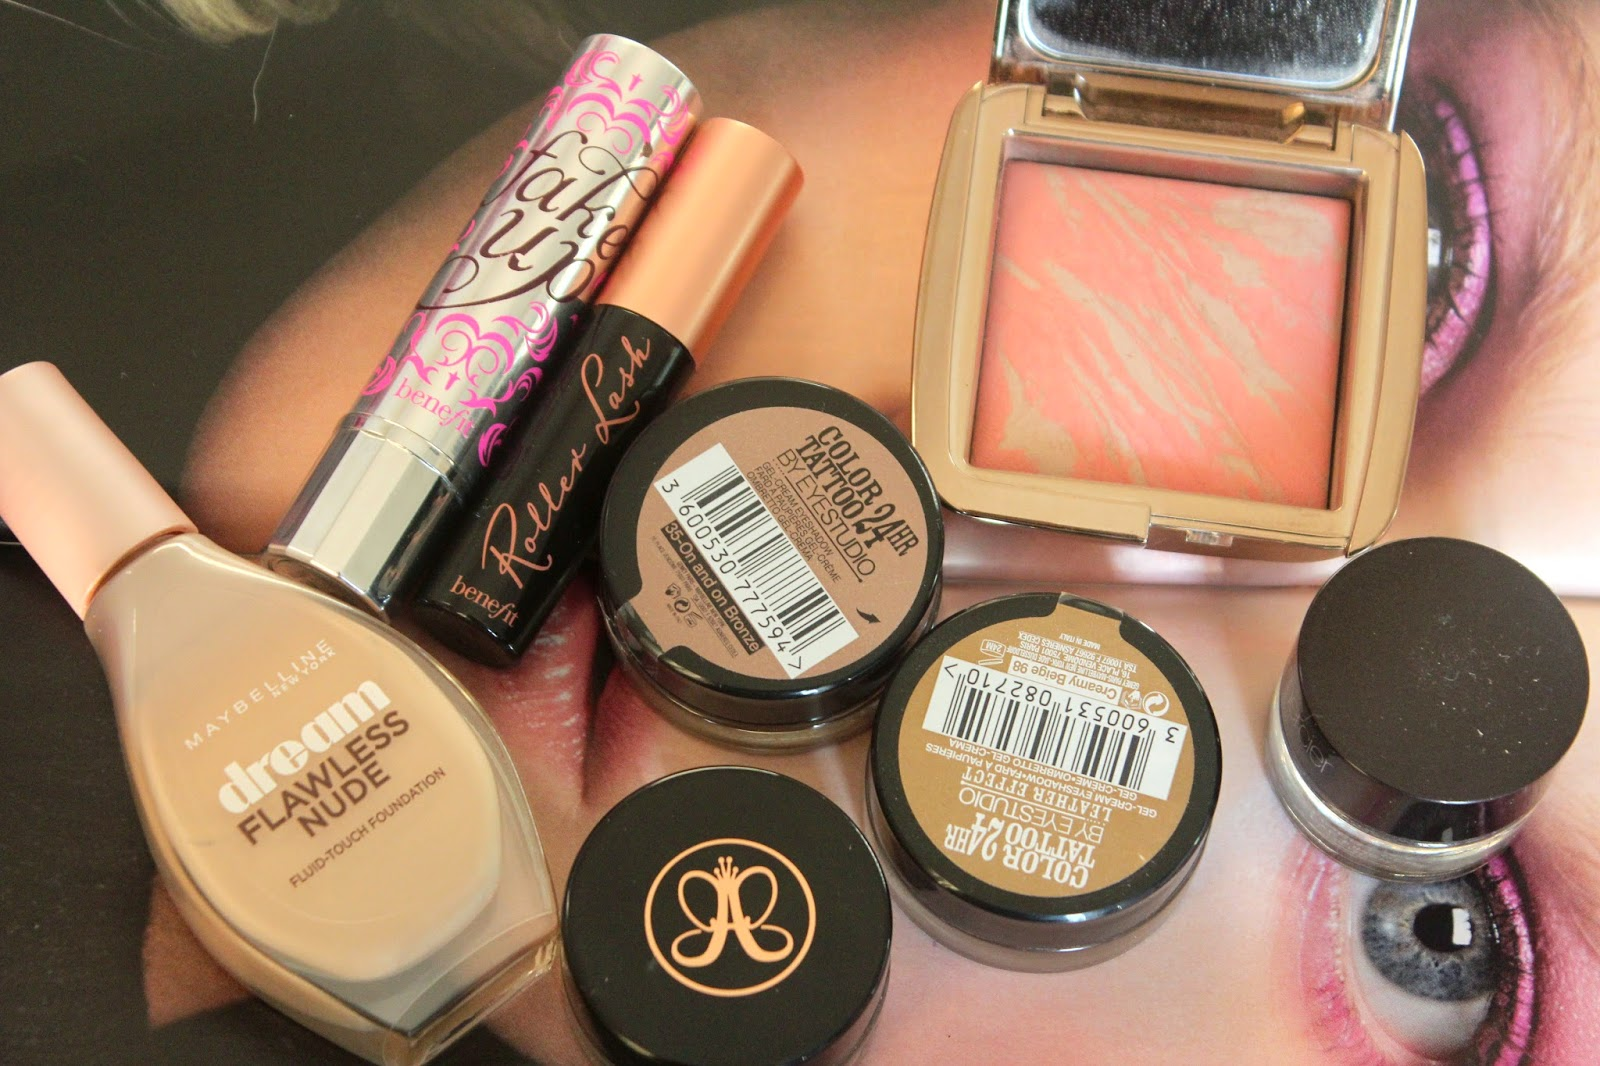 bblogger, Makeup, Maybelline, Benefit, Hourglass, Laura Mercier